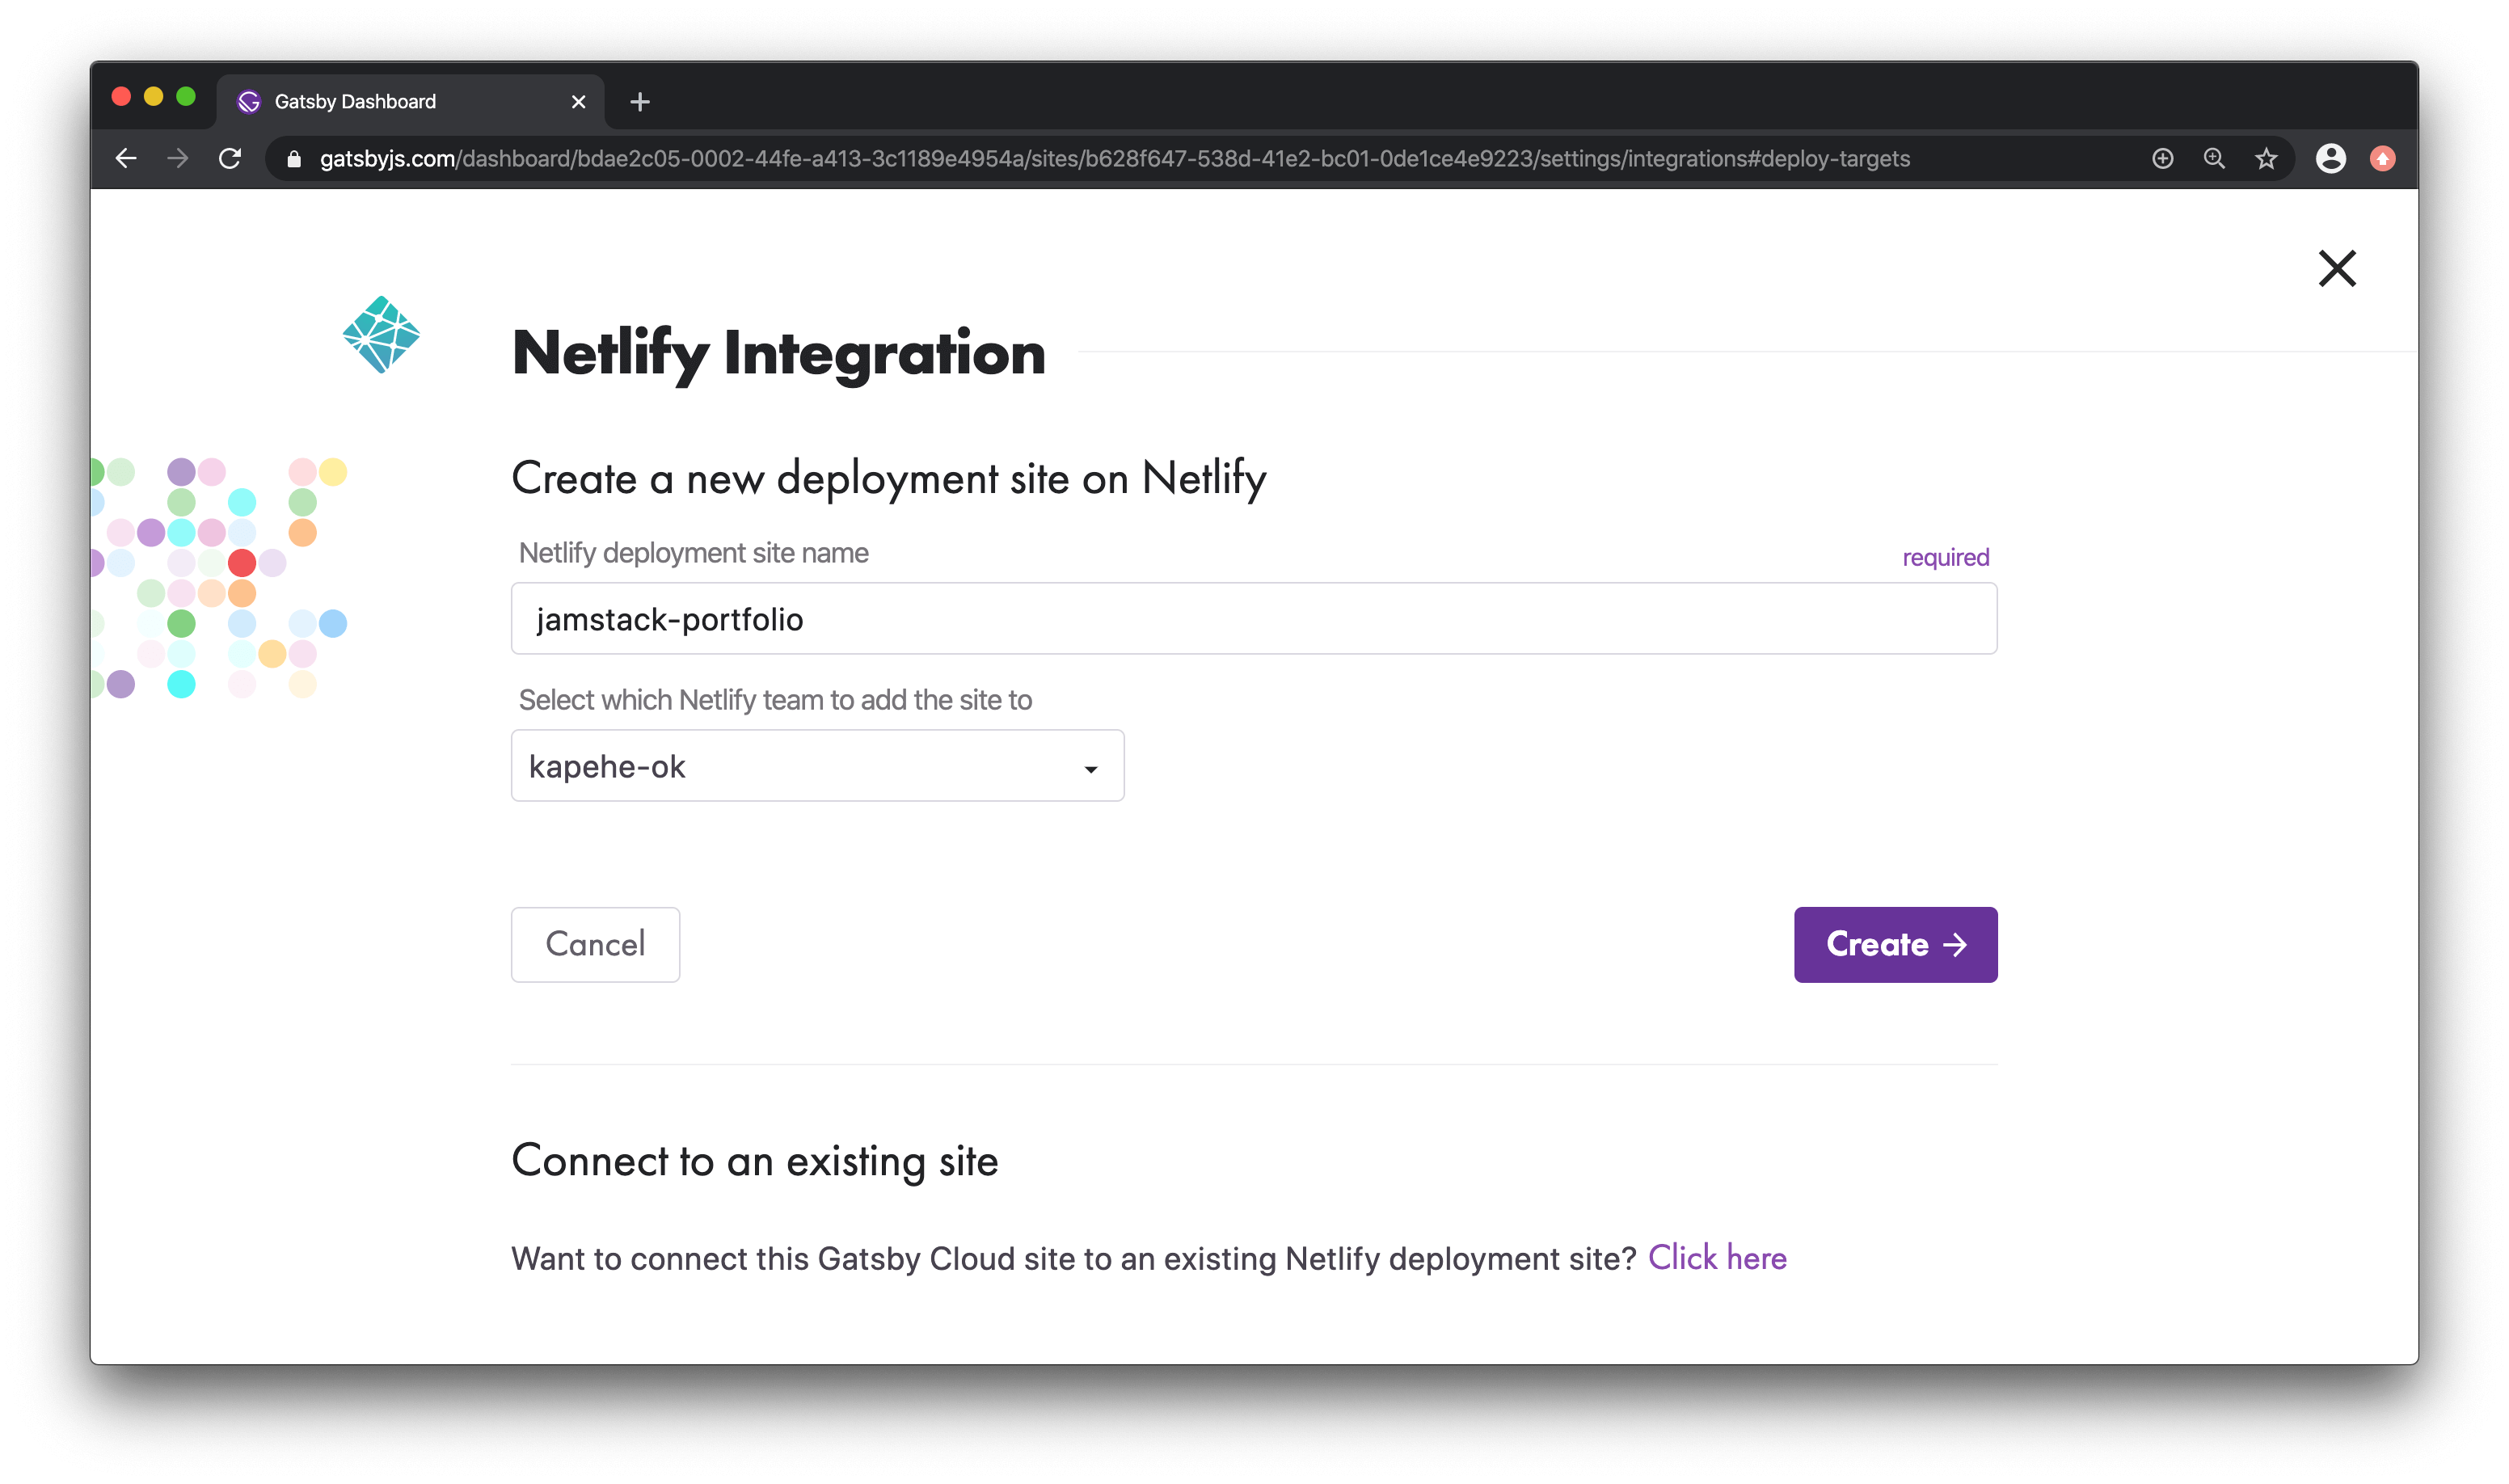 Create a new Netlify deployment site view